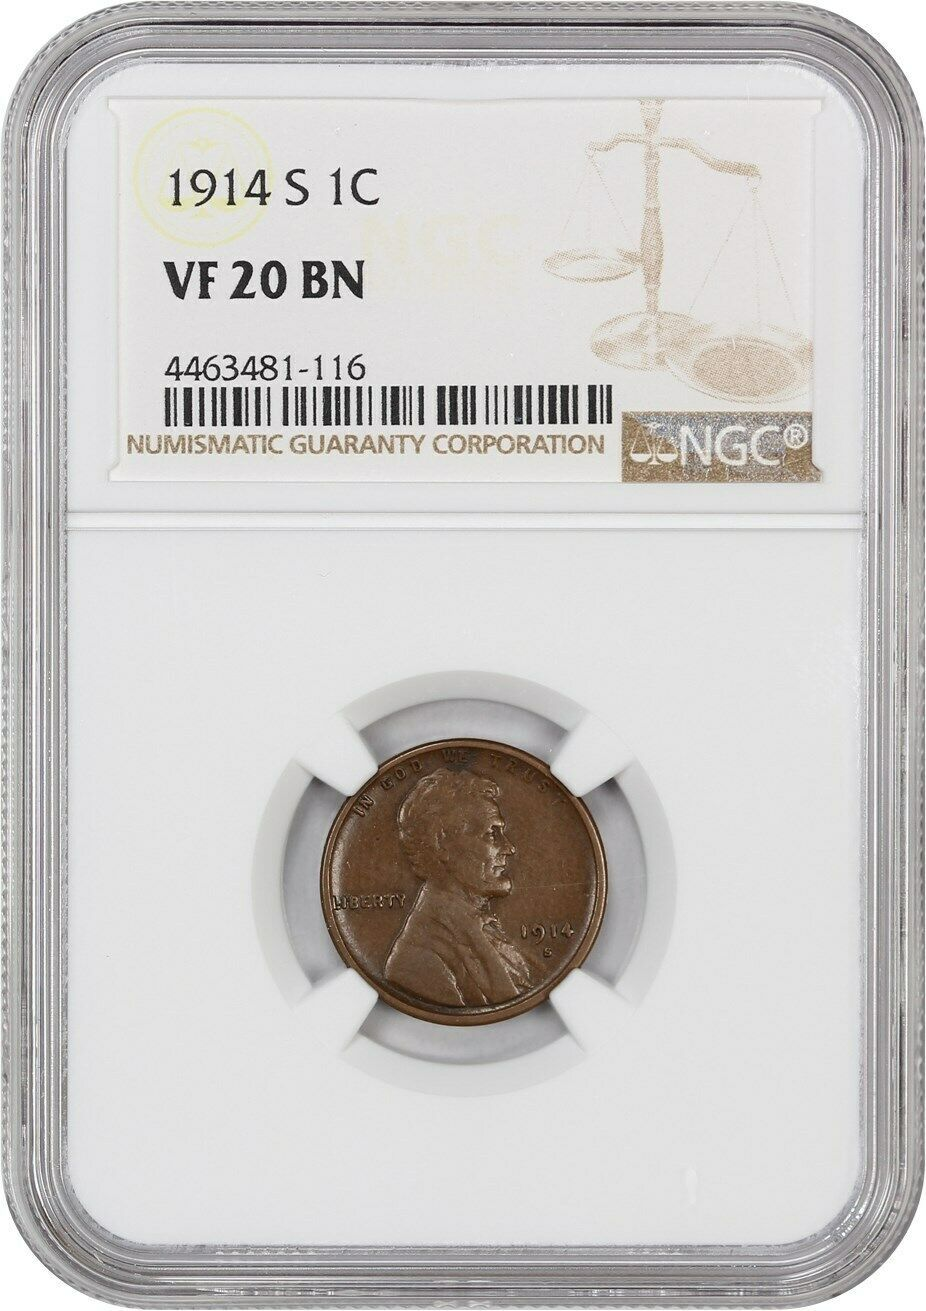 1914-S 1c NGC VF20 BN - Lincoln Cent